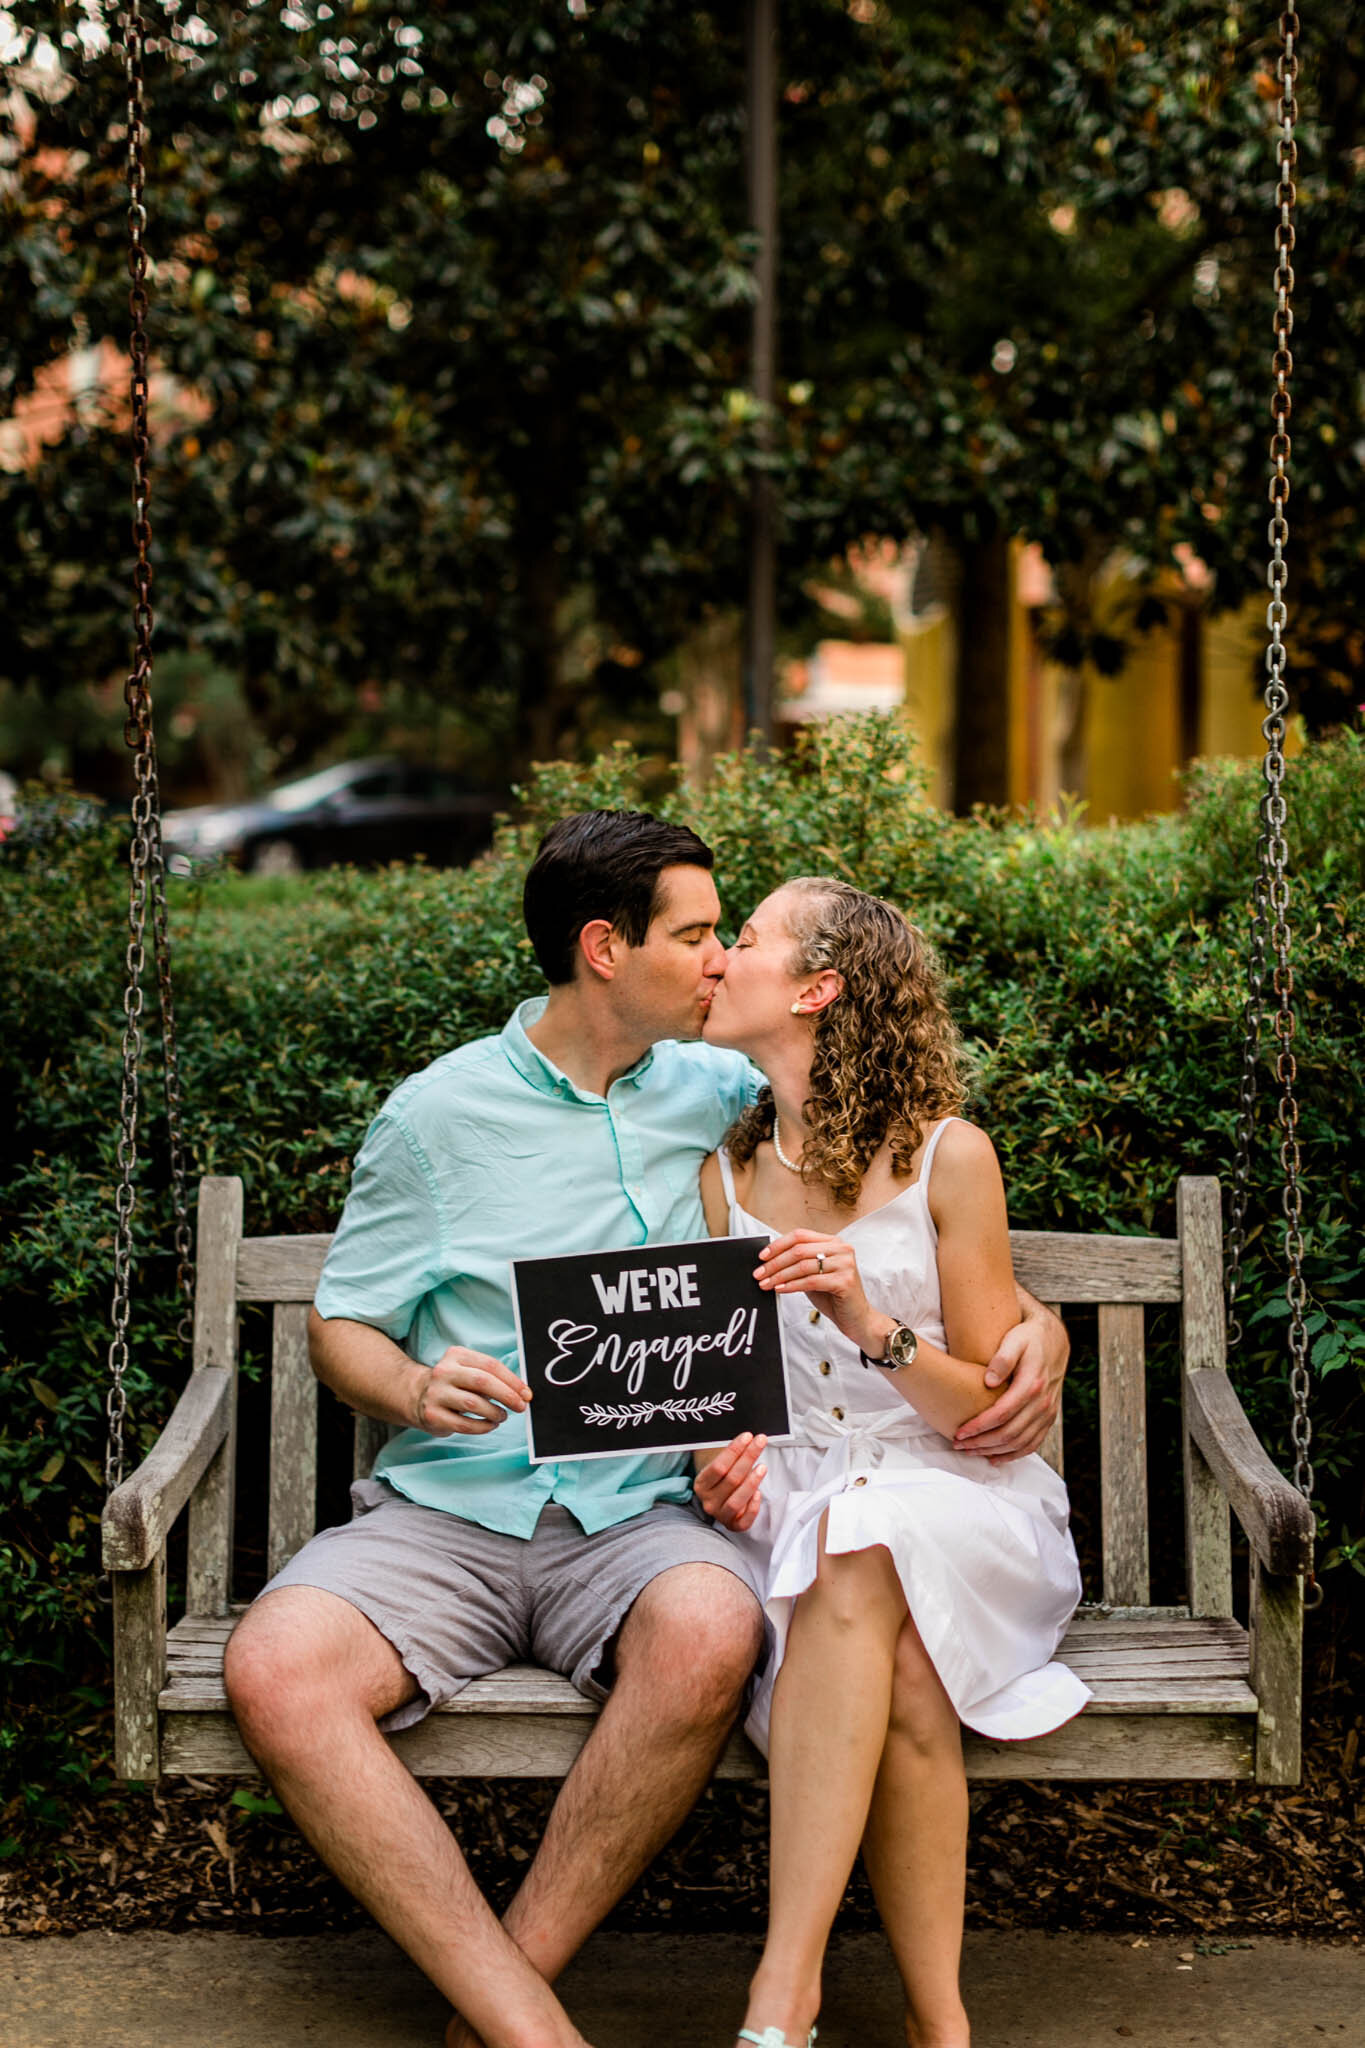 Raleigh Engagement Photographer | NC State University | By G. Lin Photography | Couple sitting on bench and holding engagement sign